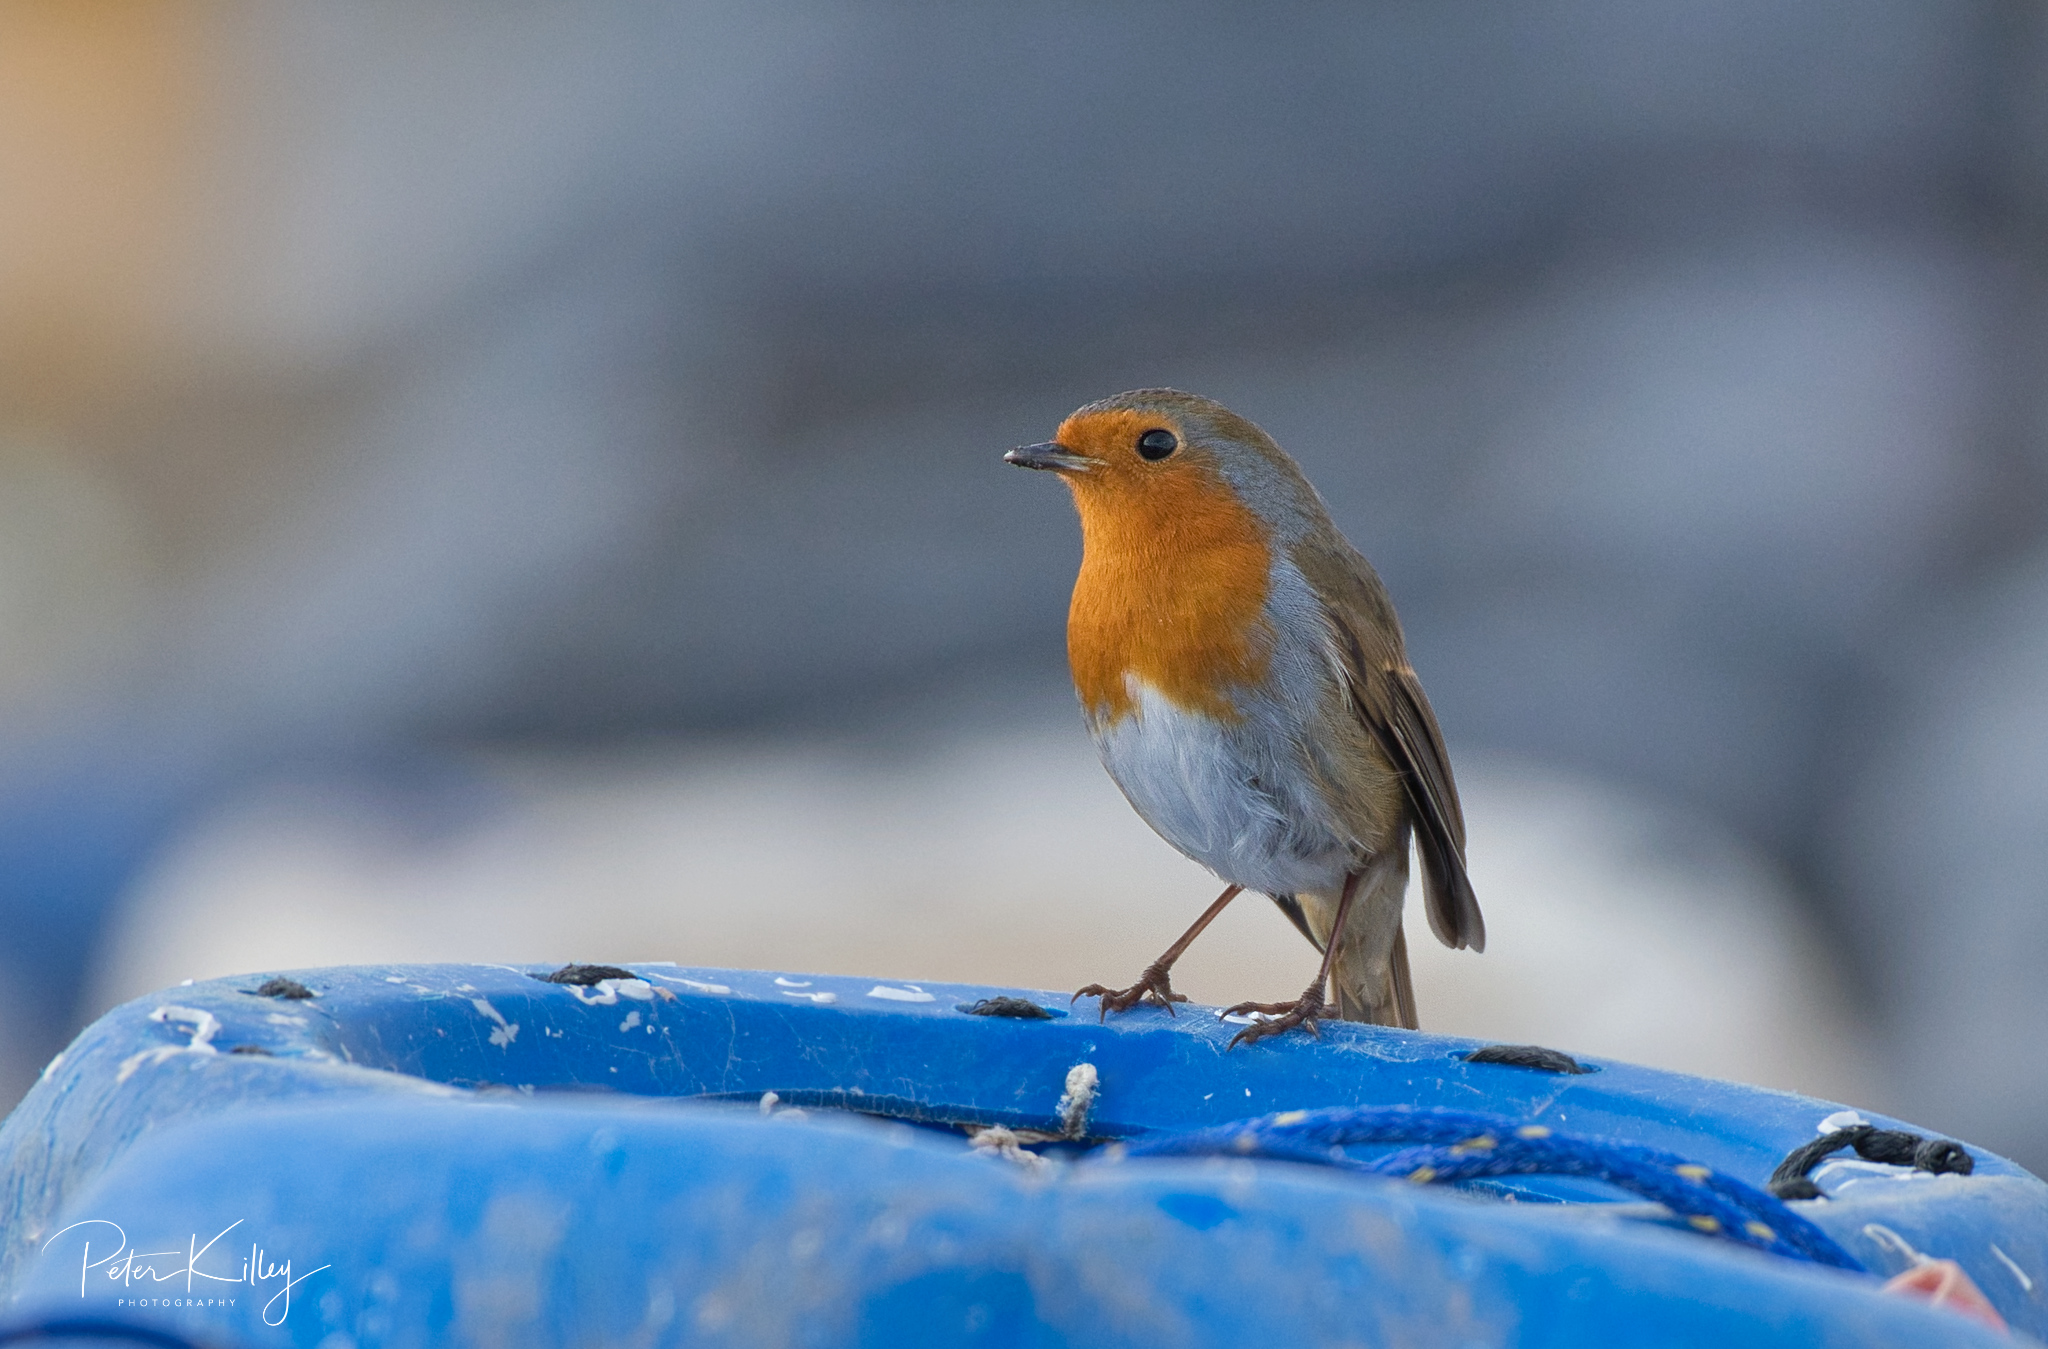 Festive Robin - © Peter Killey - www.manxscenes.com